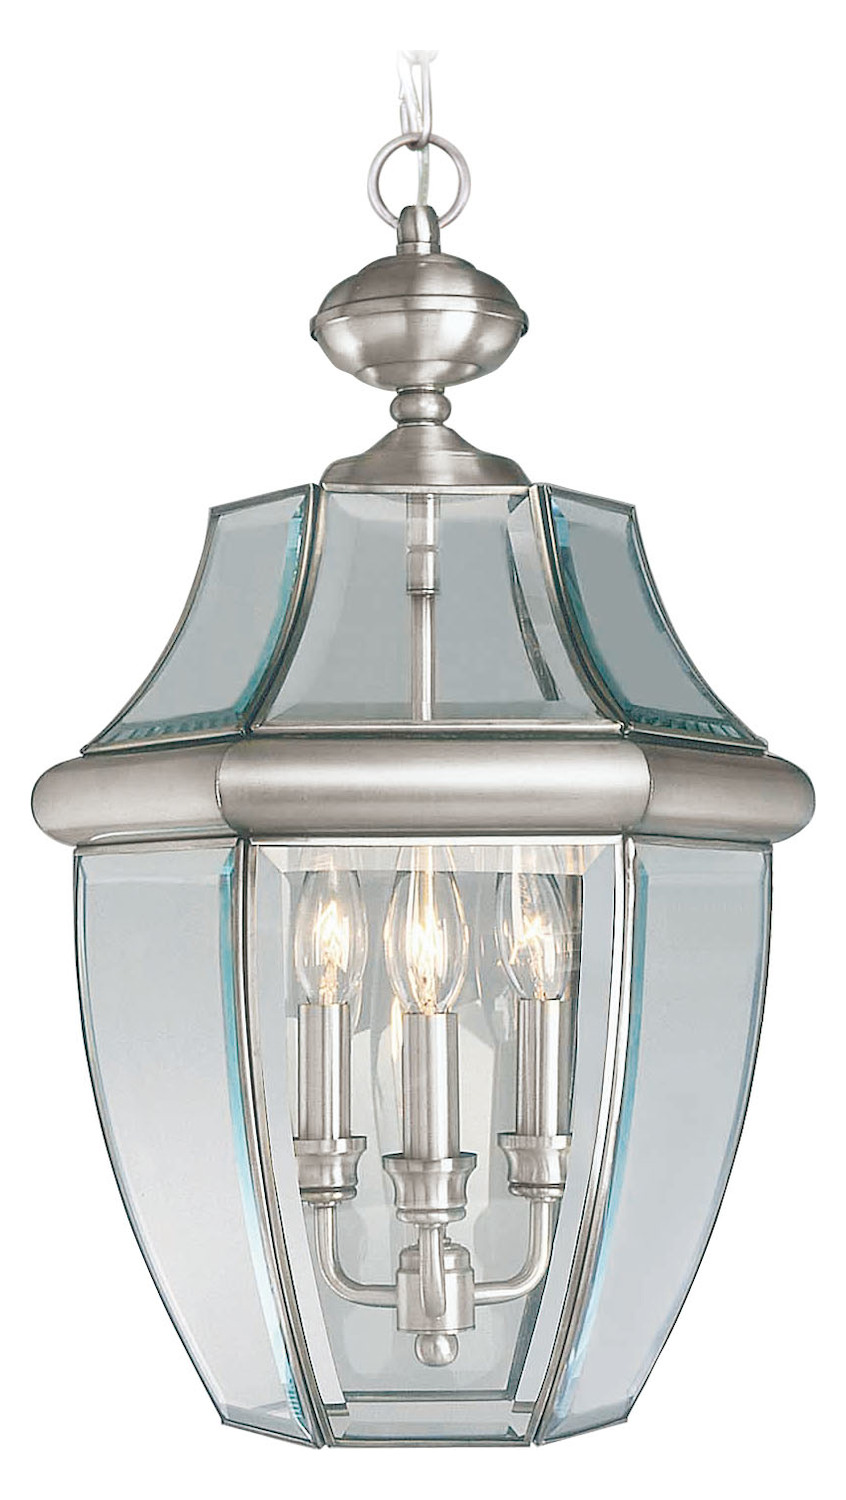 Foyer Chandelier Brushed Nickel : Livex lighting brushed nickel outdoor foyer hall fixture